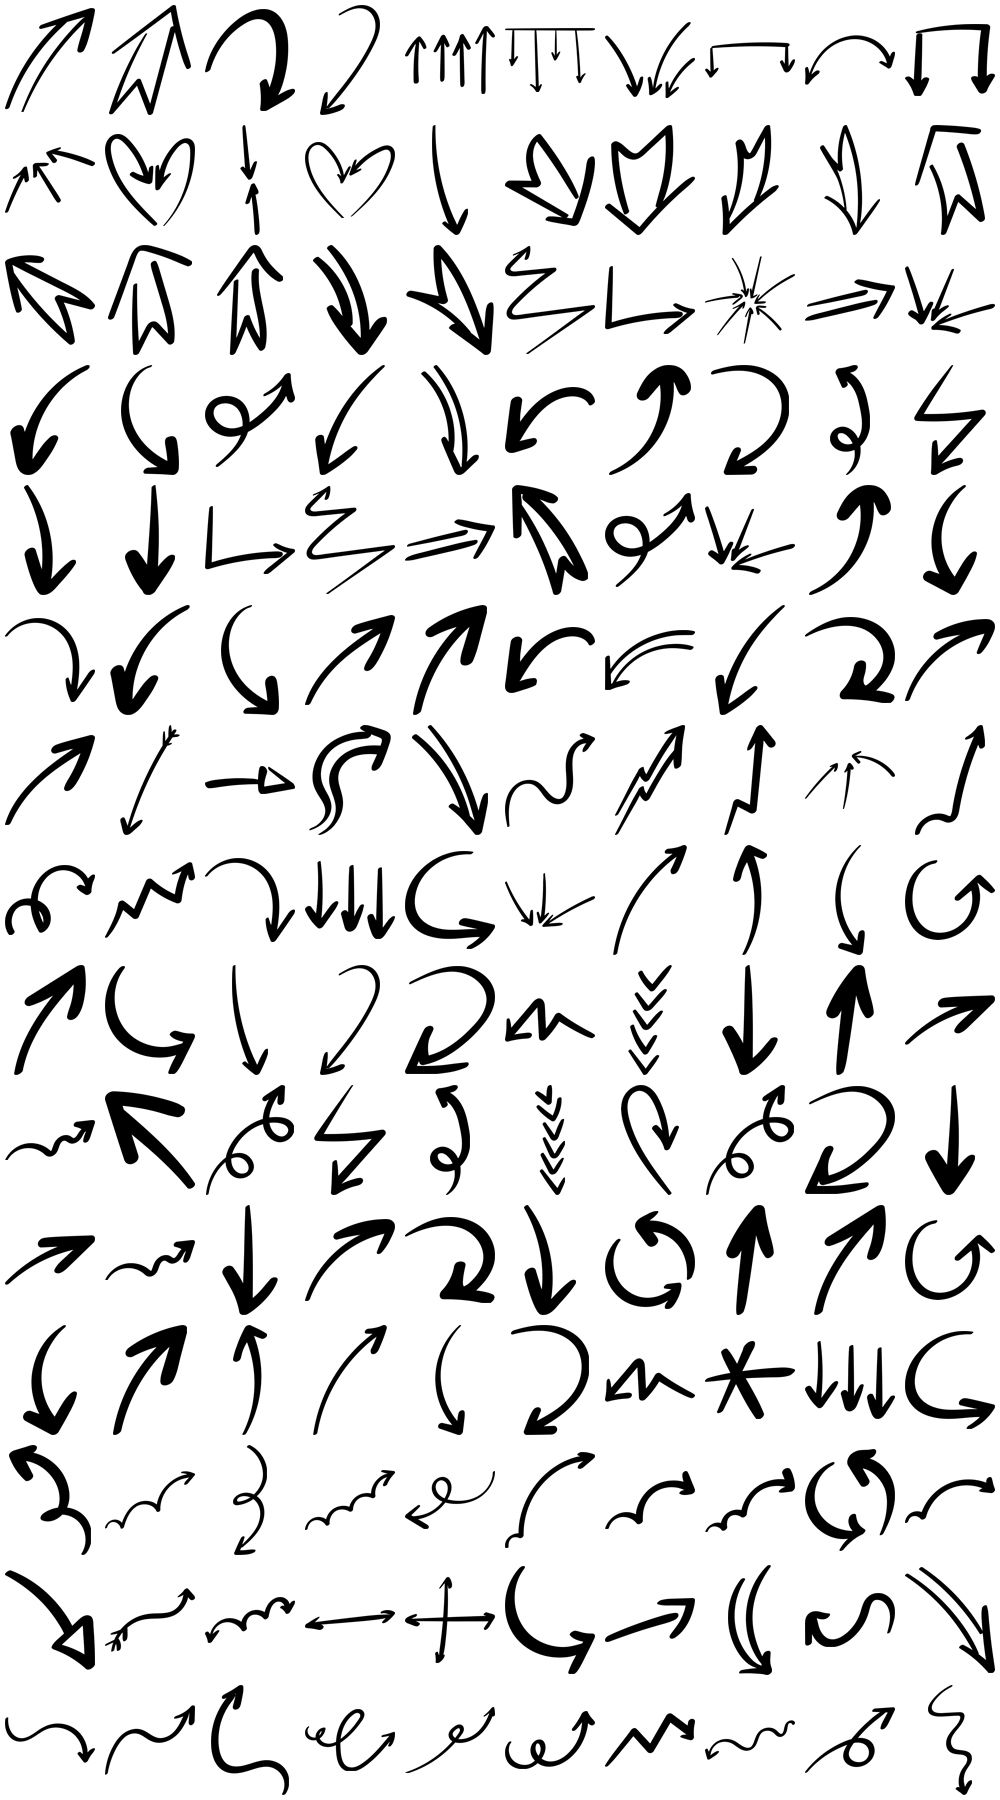 Download 150 Free Hand Drawn Arrows (PSD, EPS, PNG Hand